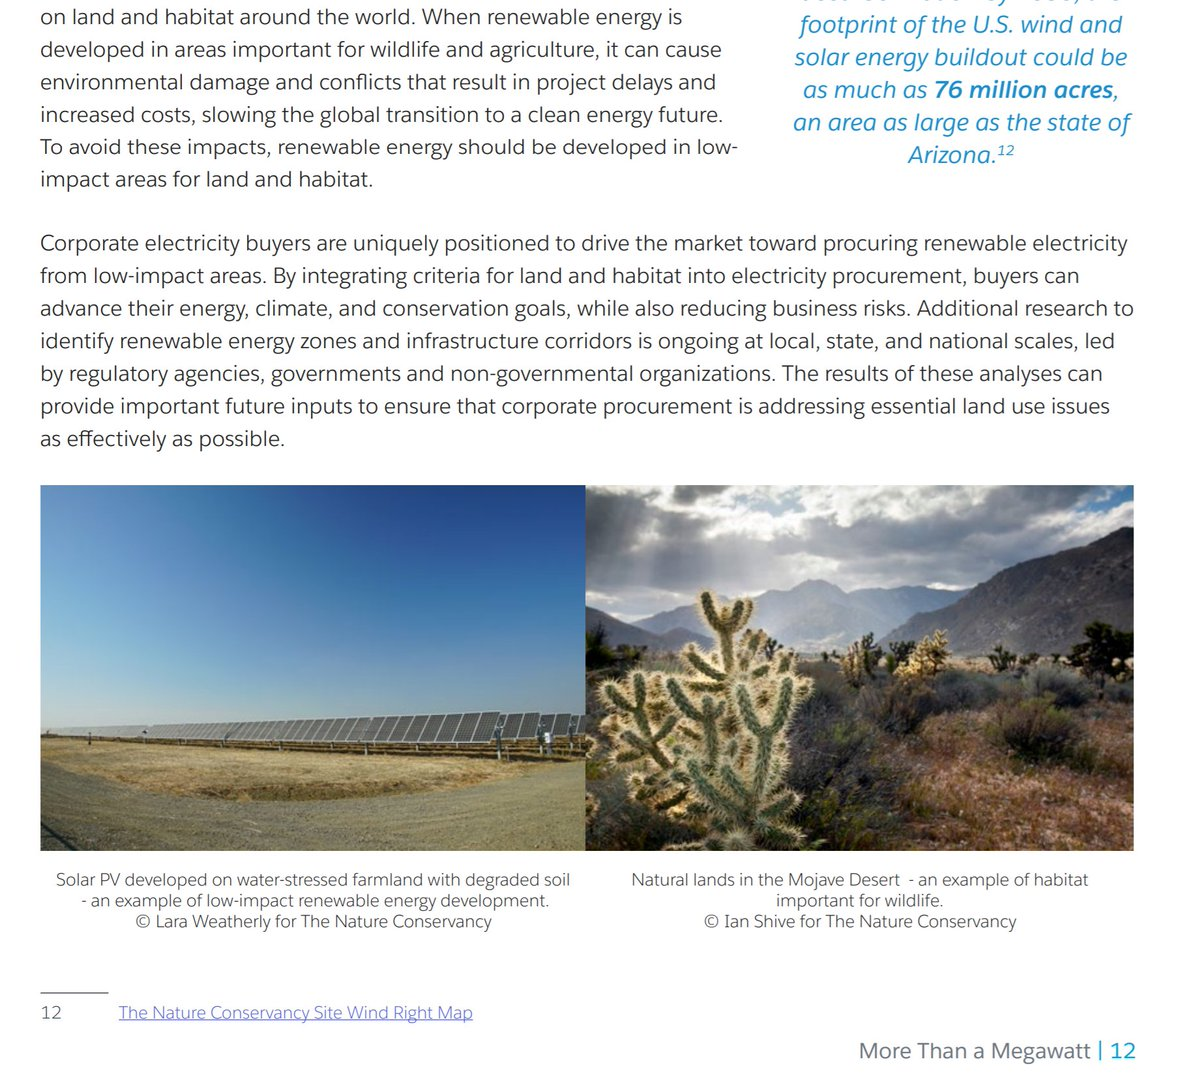 Good supplementary reading:  @nature_org has a very recent report out on the fact that there are good projects and bad projects - and our decisions make the difference.  https://c1.sfdcstatic.com/content/dam/web/en_us/www/assets/pdf/sustainability/sustainability-more-than-megawatt.pdf?sf130678950=1